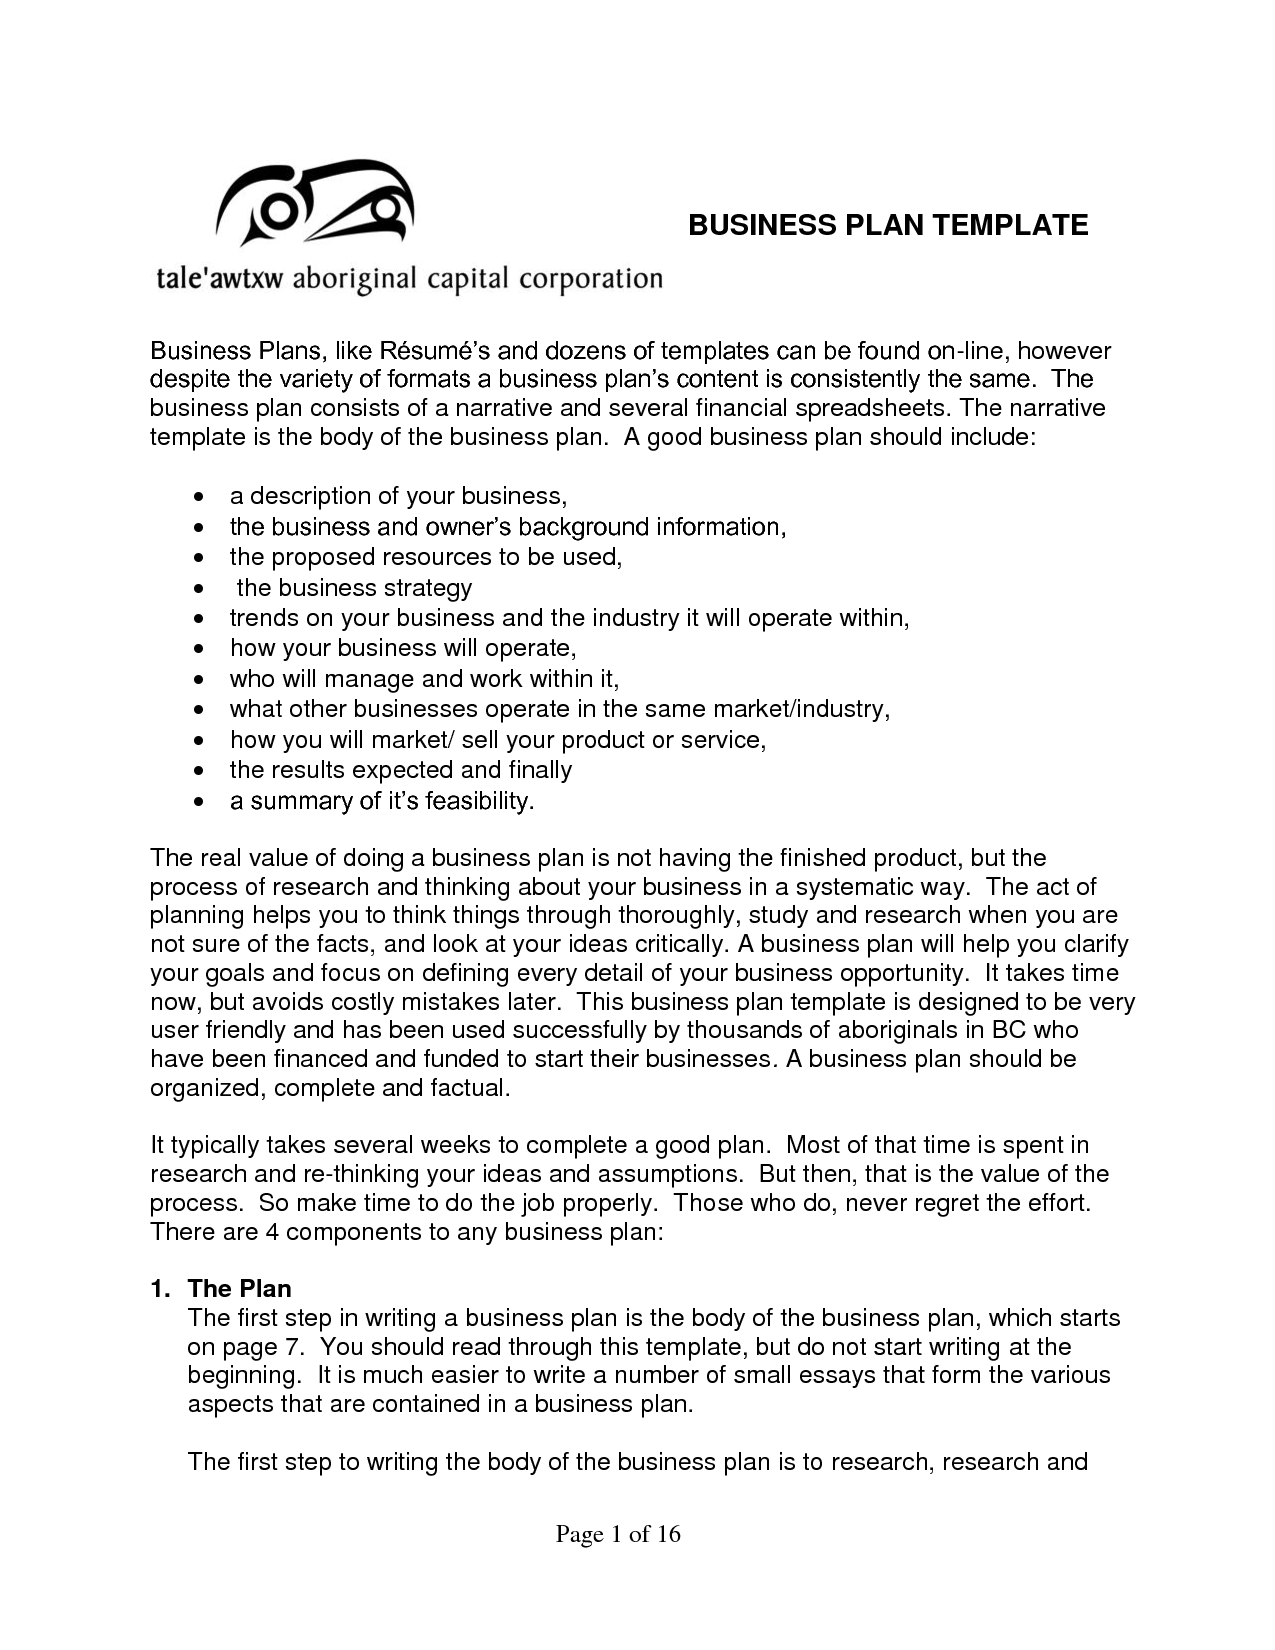 Business Plan Template Sample Pdf